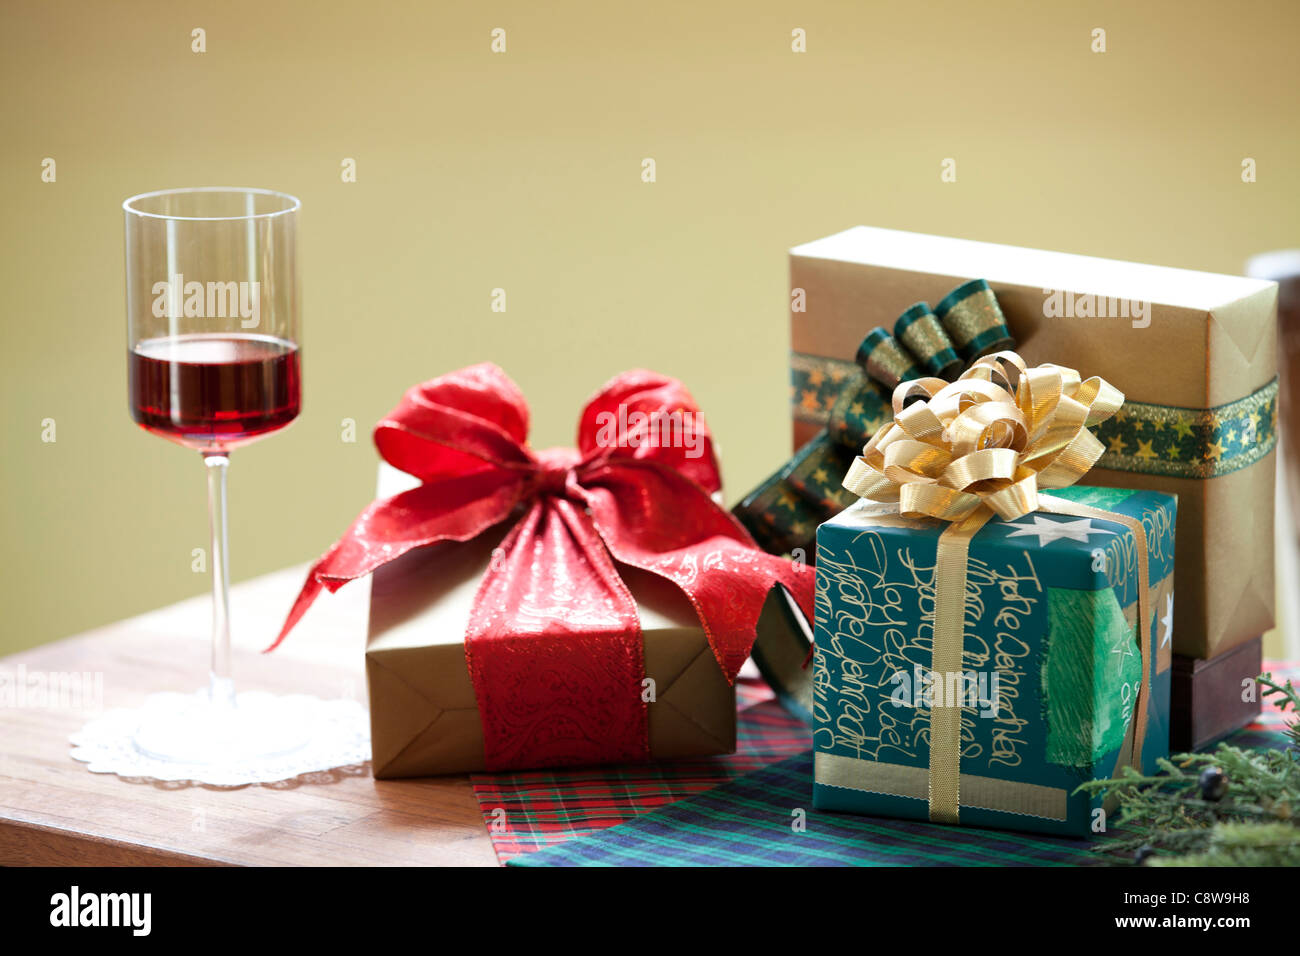 Decorative Christmas Gifts And Wingless - Stock Image